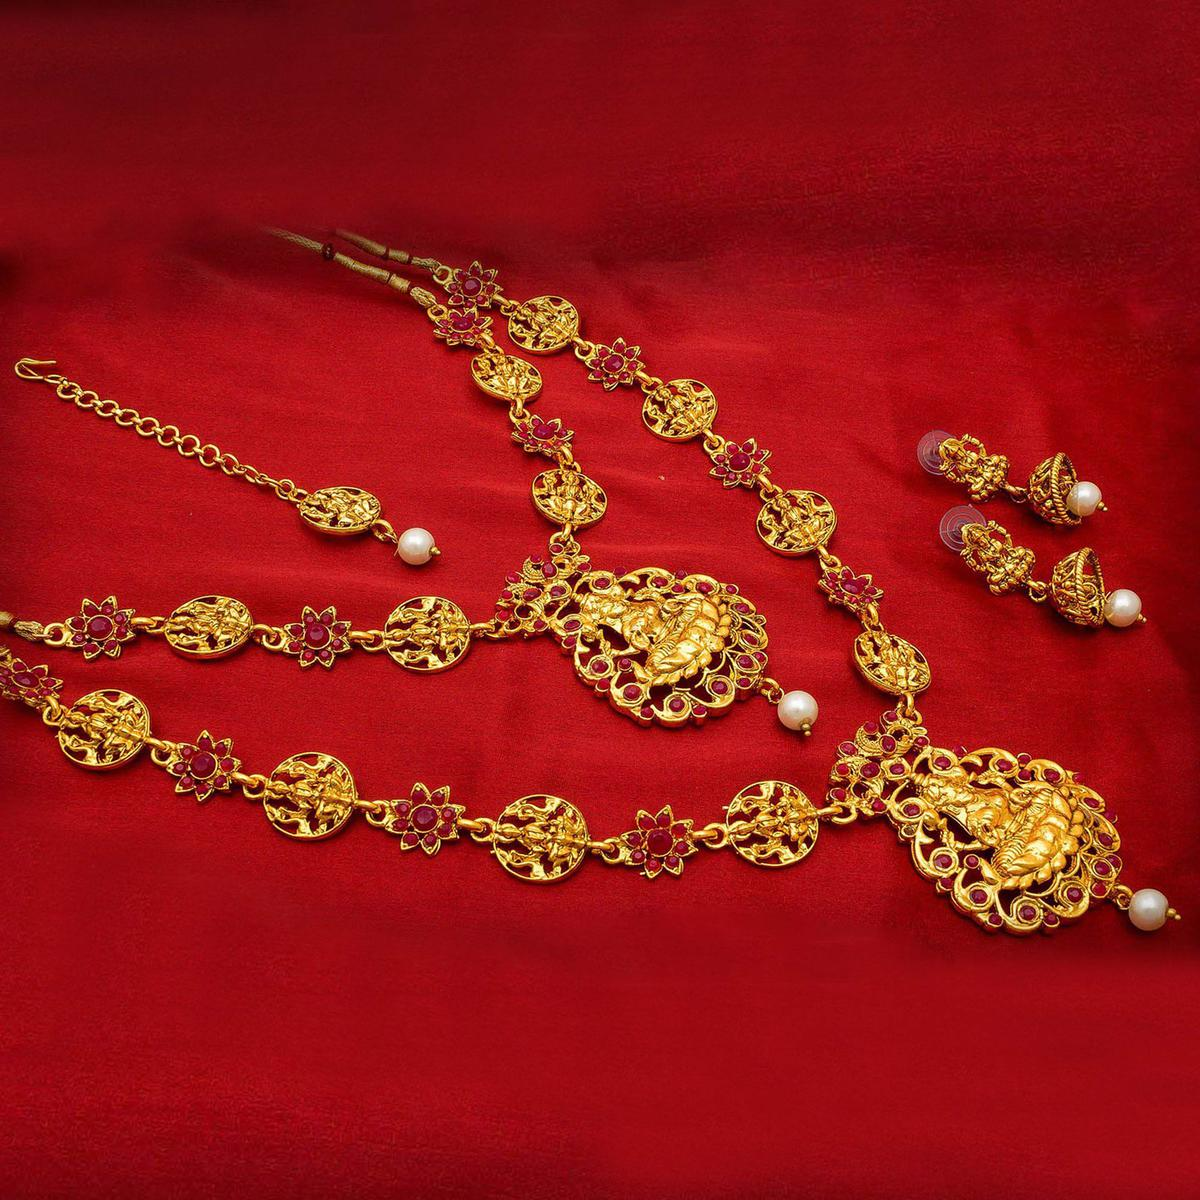 Attractive Golden Colored Mix Metal & Stone Work Double Necklace Set